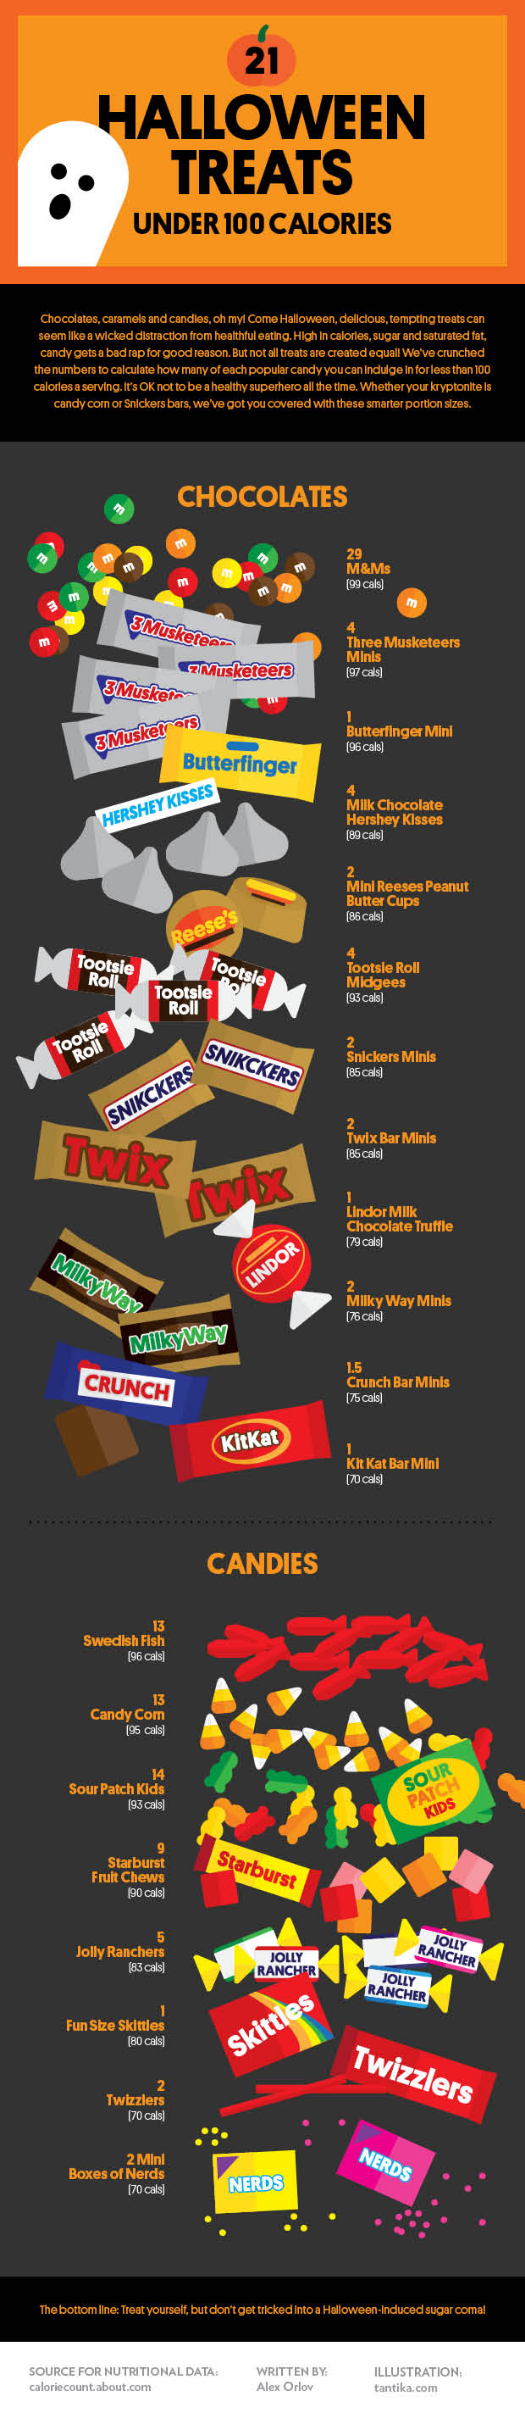 Halloween-Candy-at-100-Calories-or-Less-INFOGRAPHIC.png